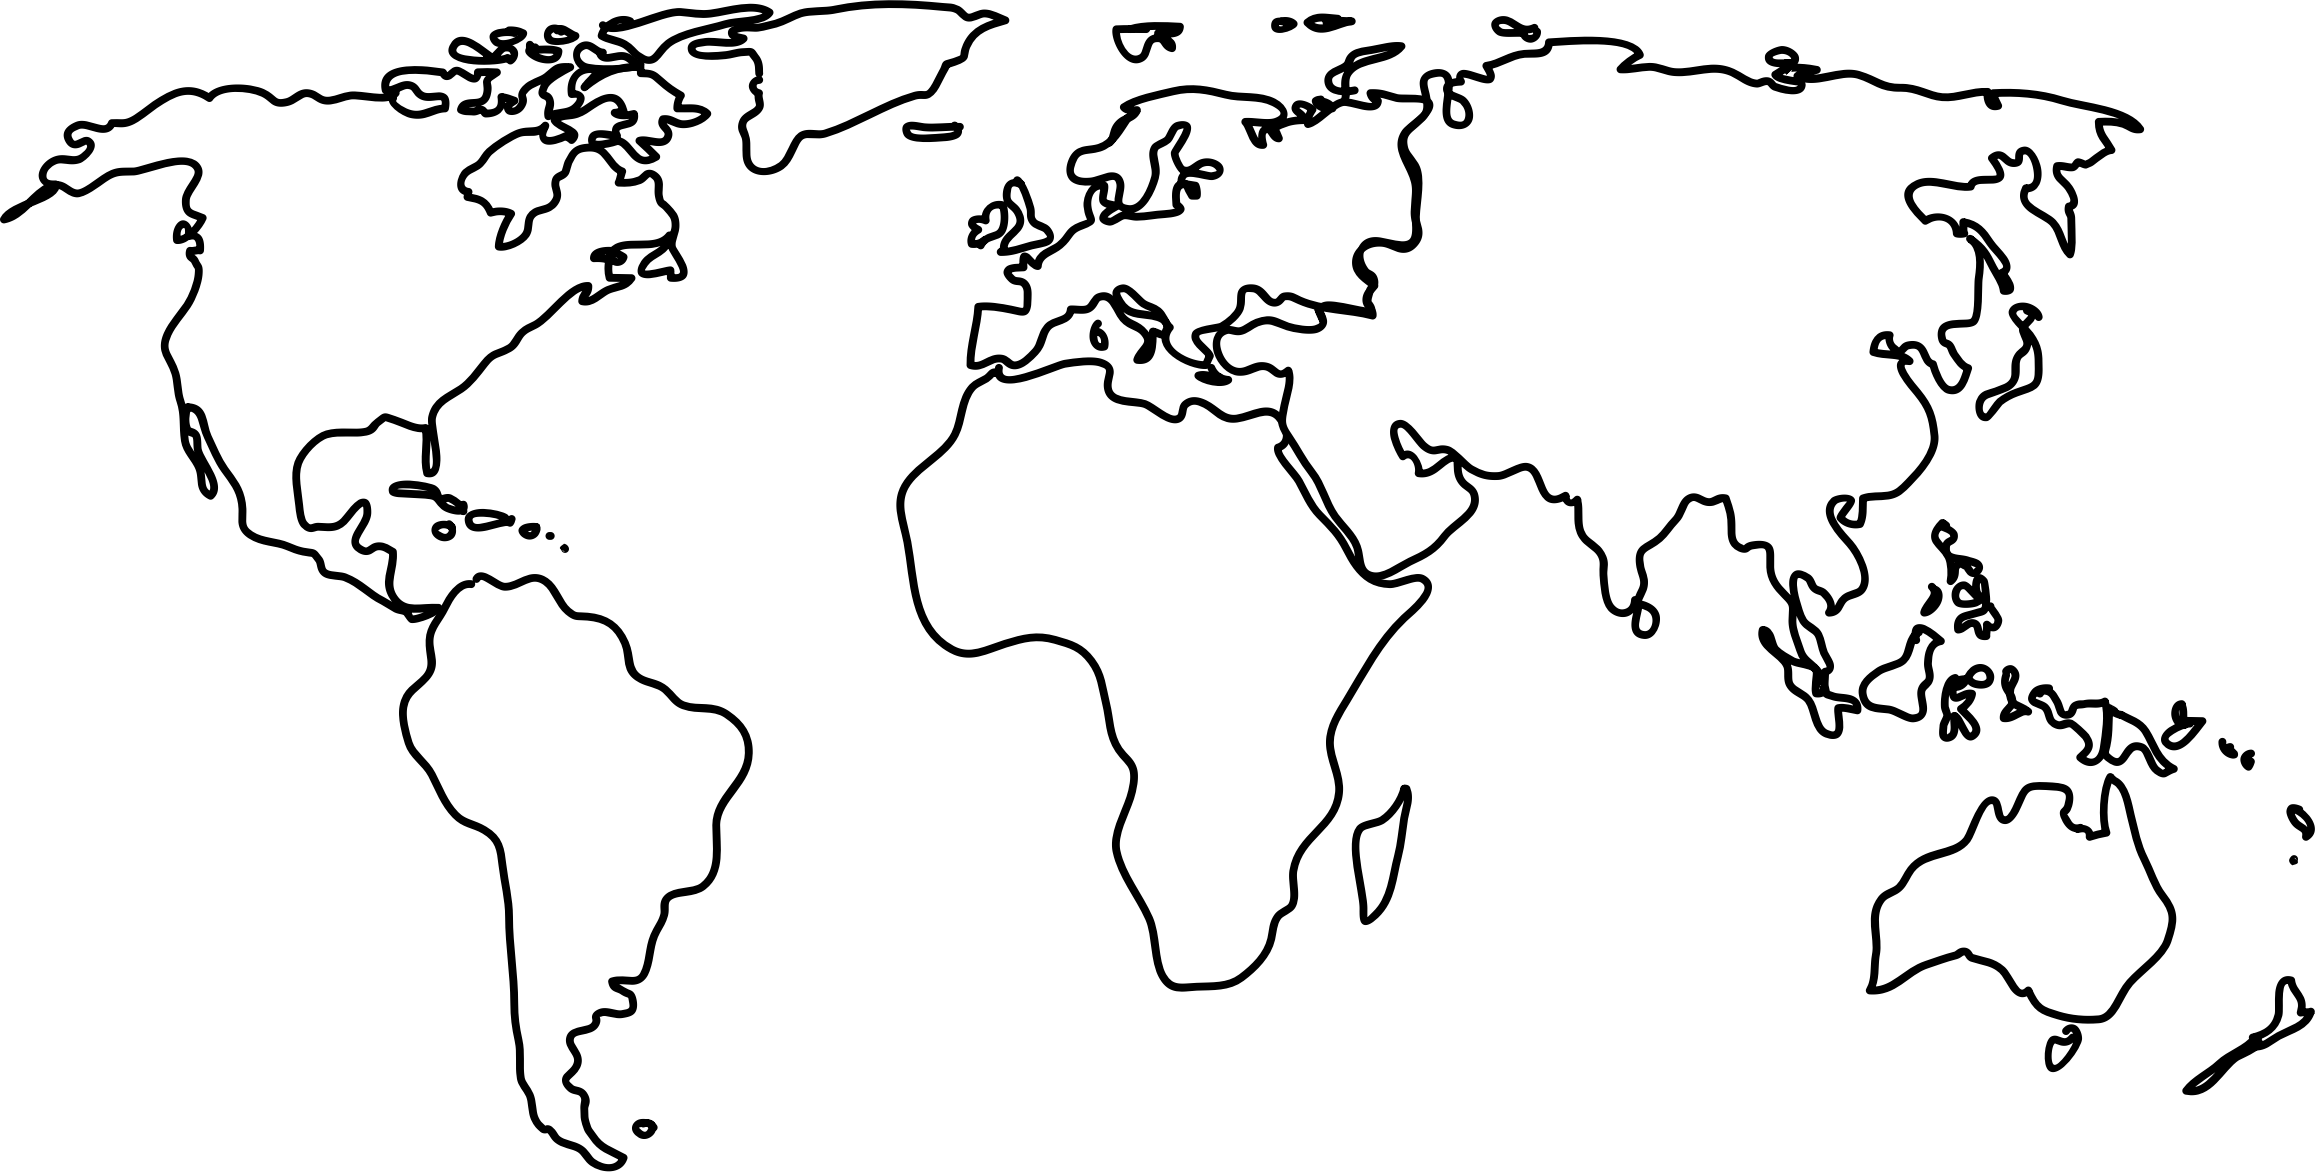 Clipart Black And White Countries World.